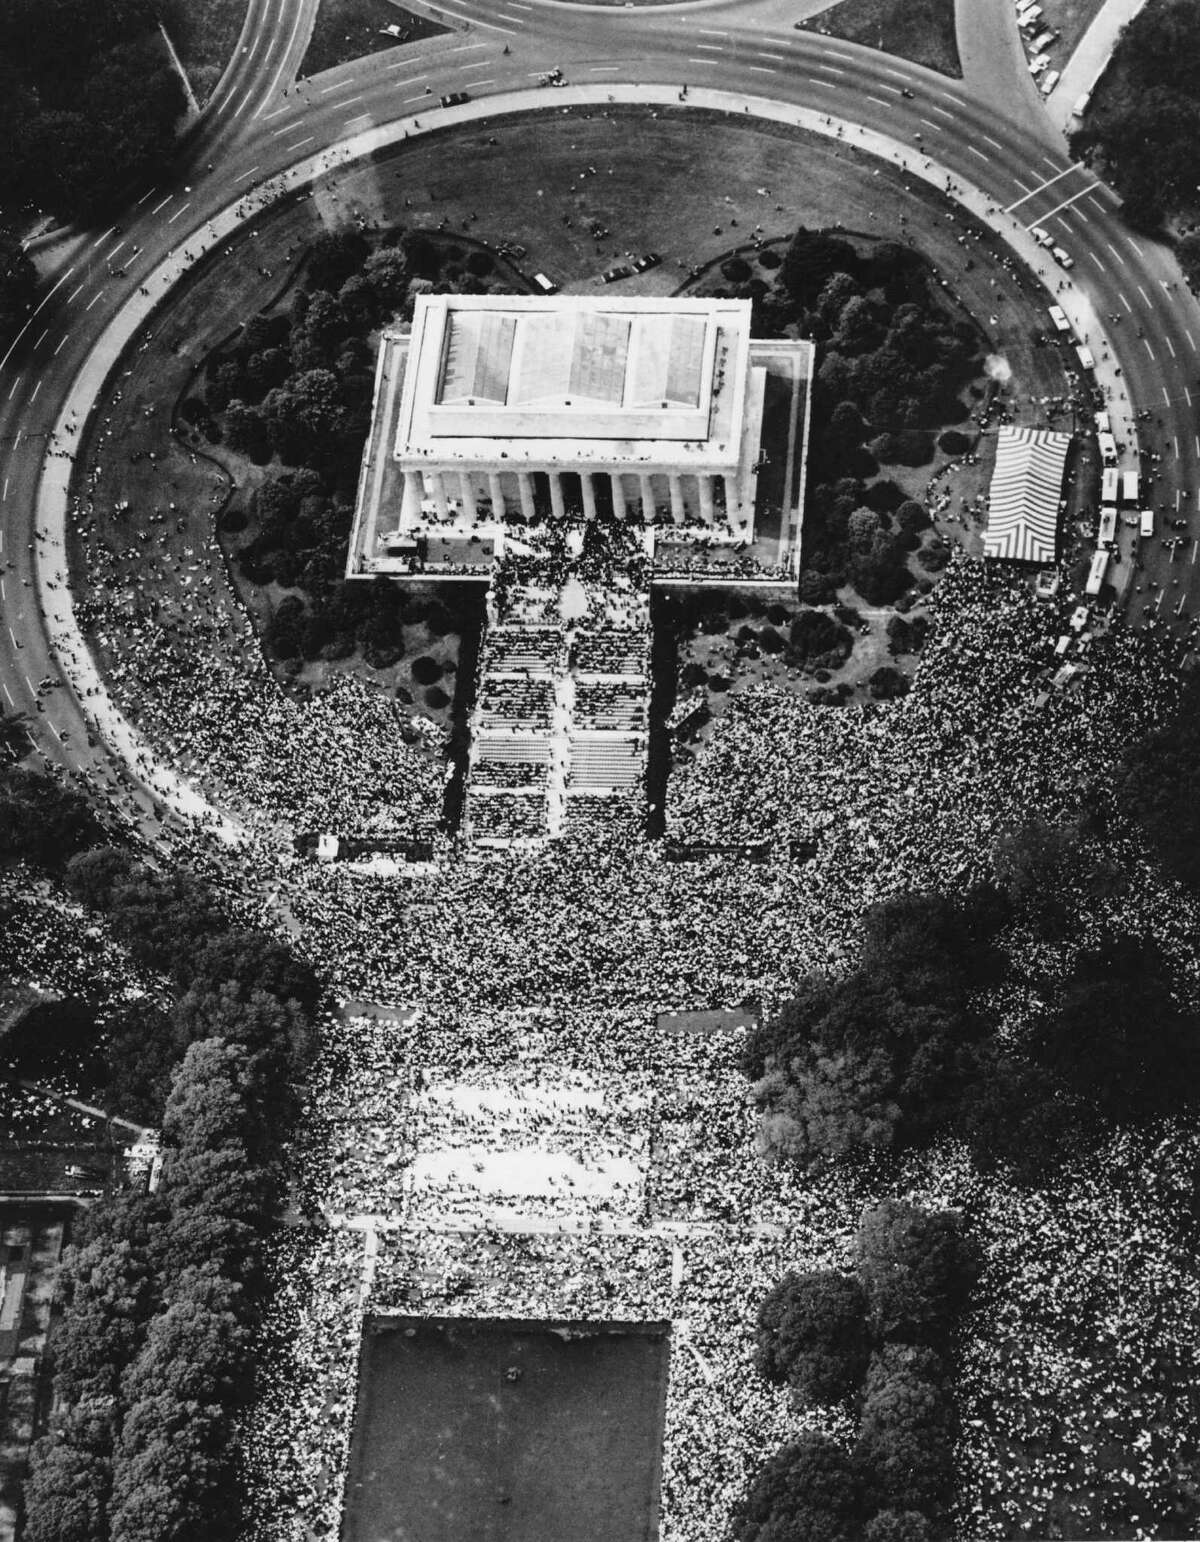 People crowd the Lincoln Memorial in Washington, D.C., ahead of Dr. Martin Luther King Jr.'s